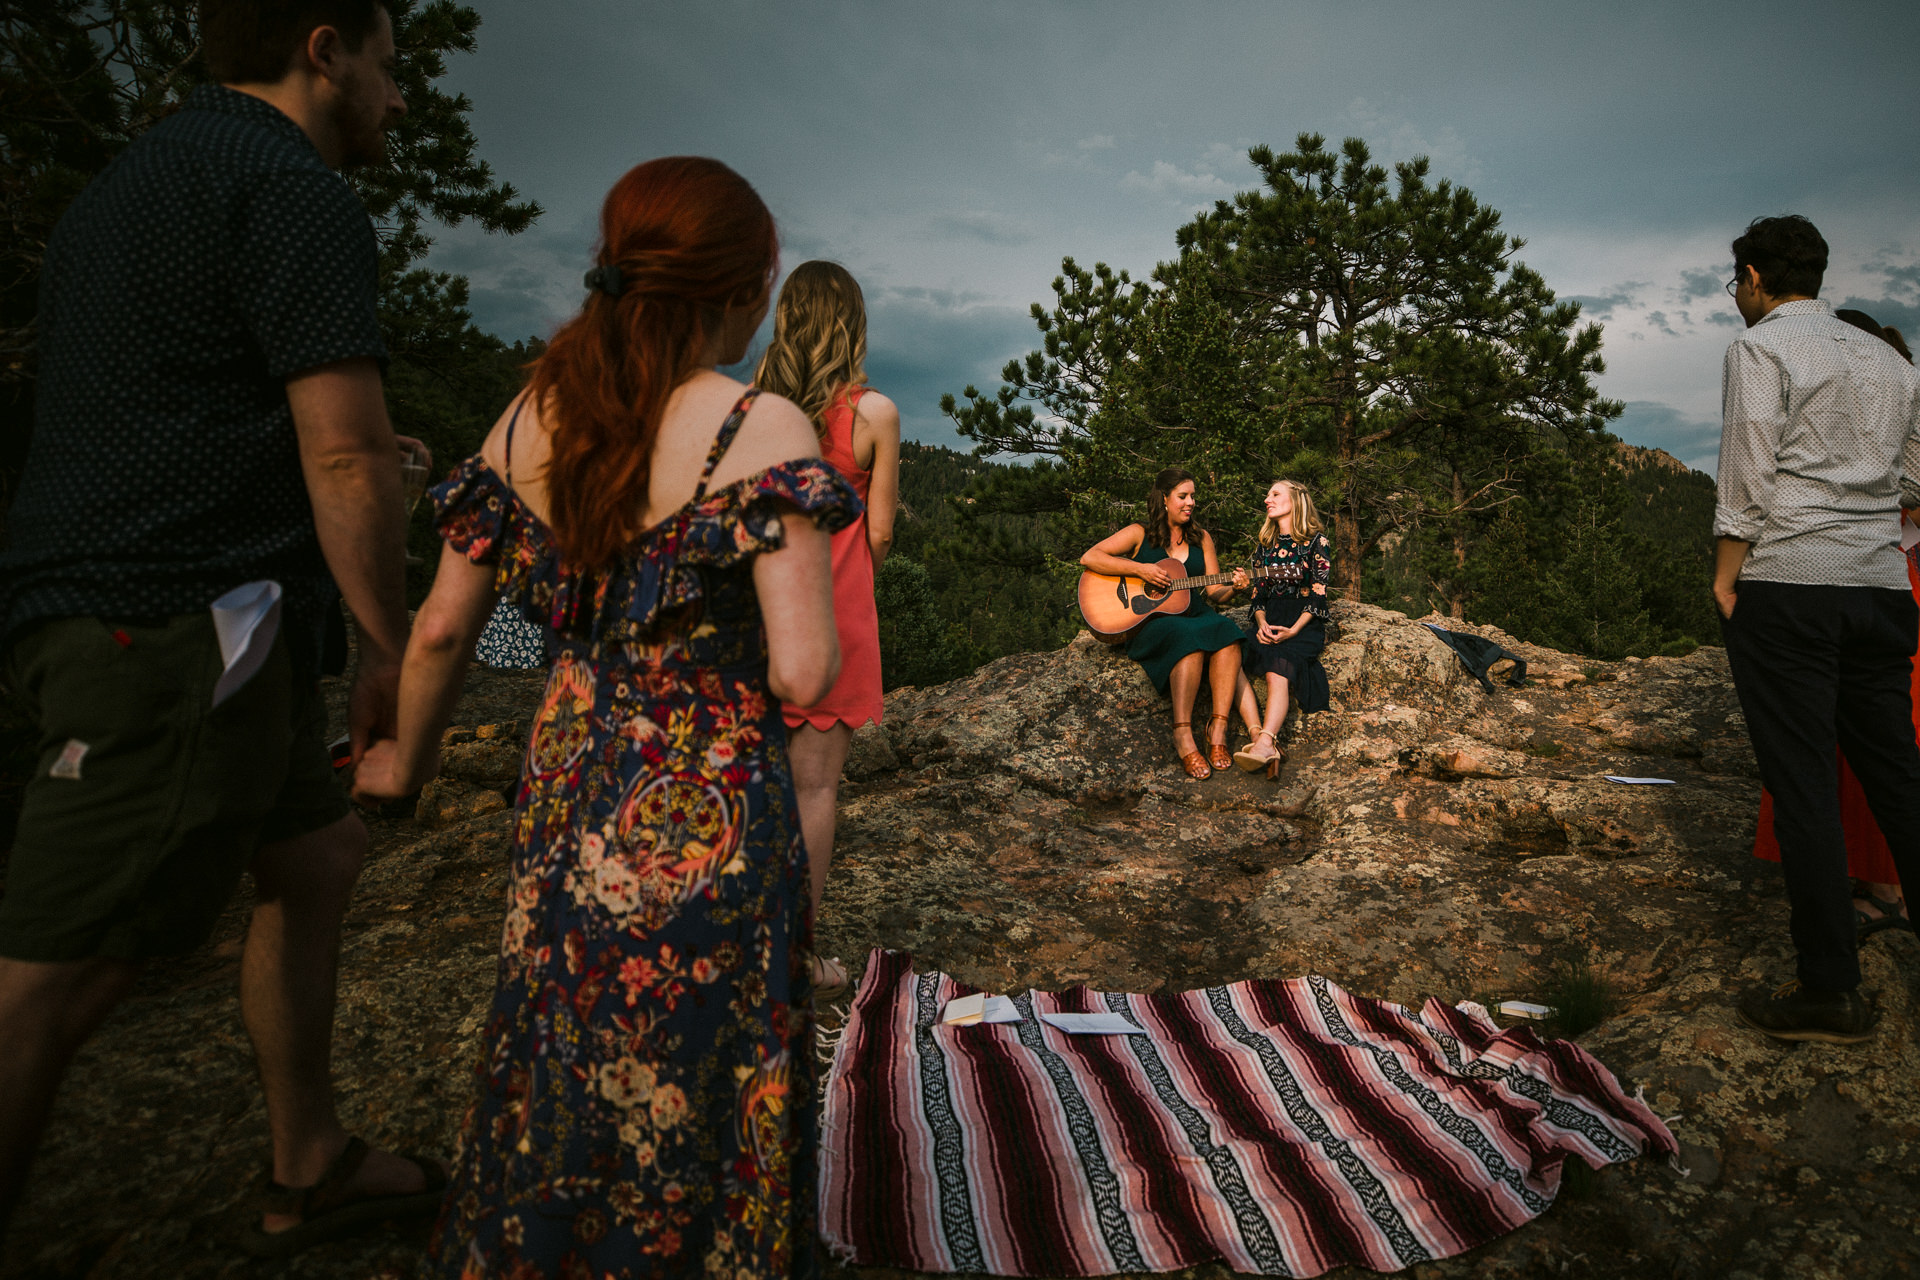 Colorado Mountains Wedding Photo - performing a song with a guitar outside on the rocks